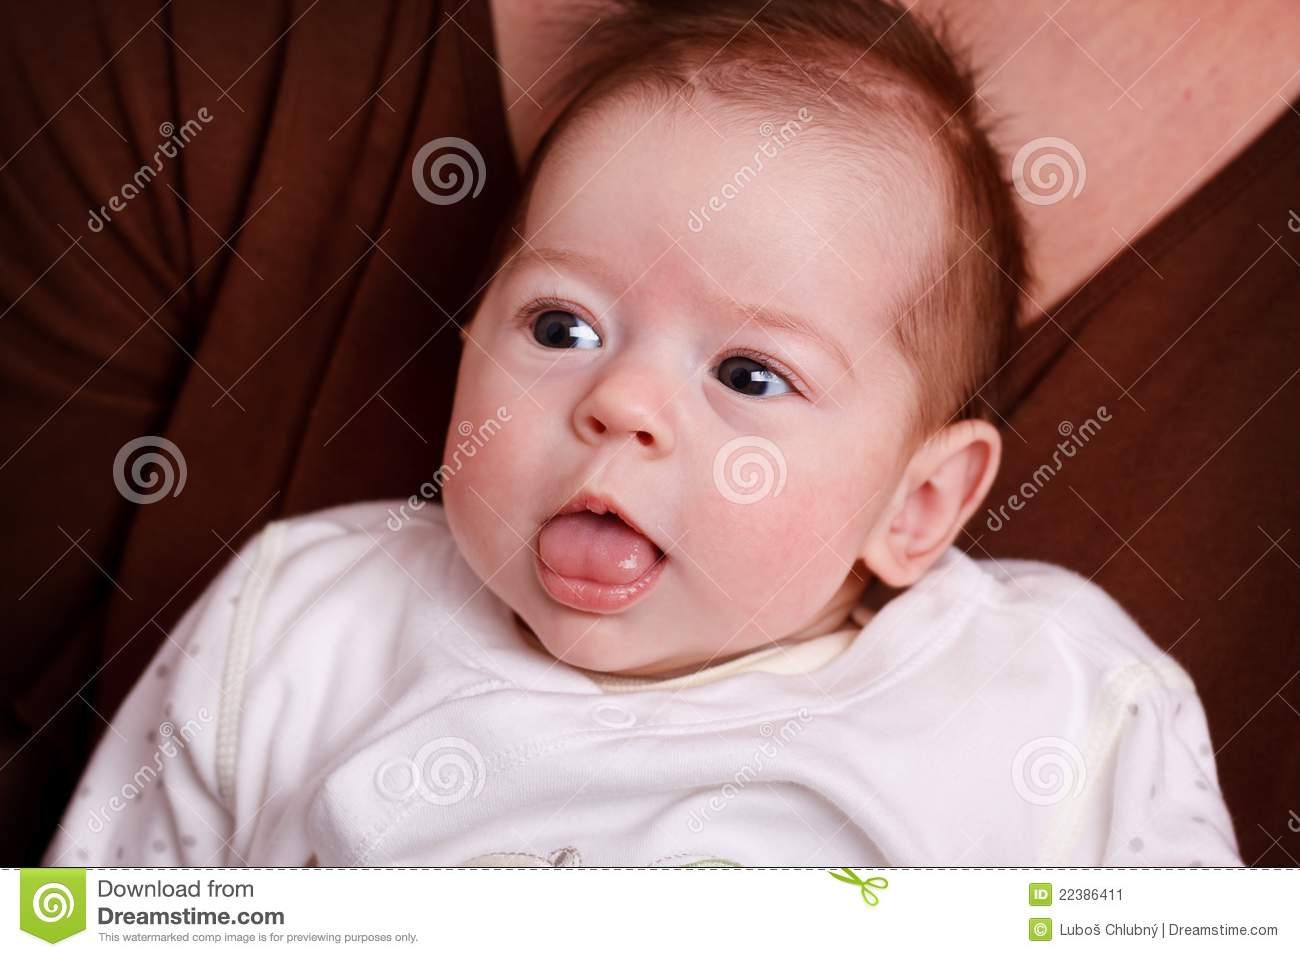 Baby Girl Making Funny Faces Stock Image - Image: 22386411 Funny Baby Girl